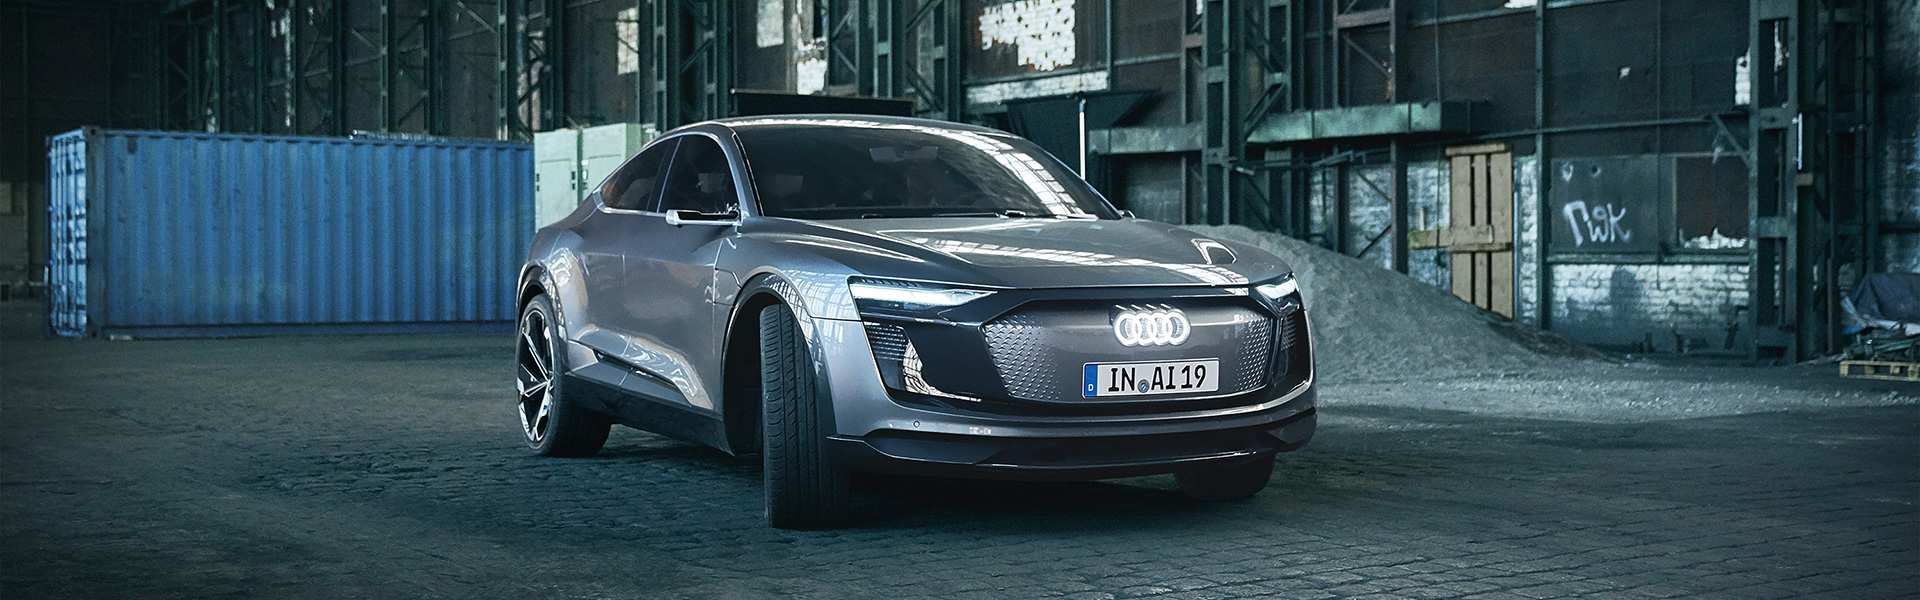 93 The Best Audi E Tron Sportback 2020 New Review